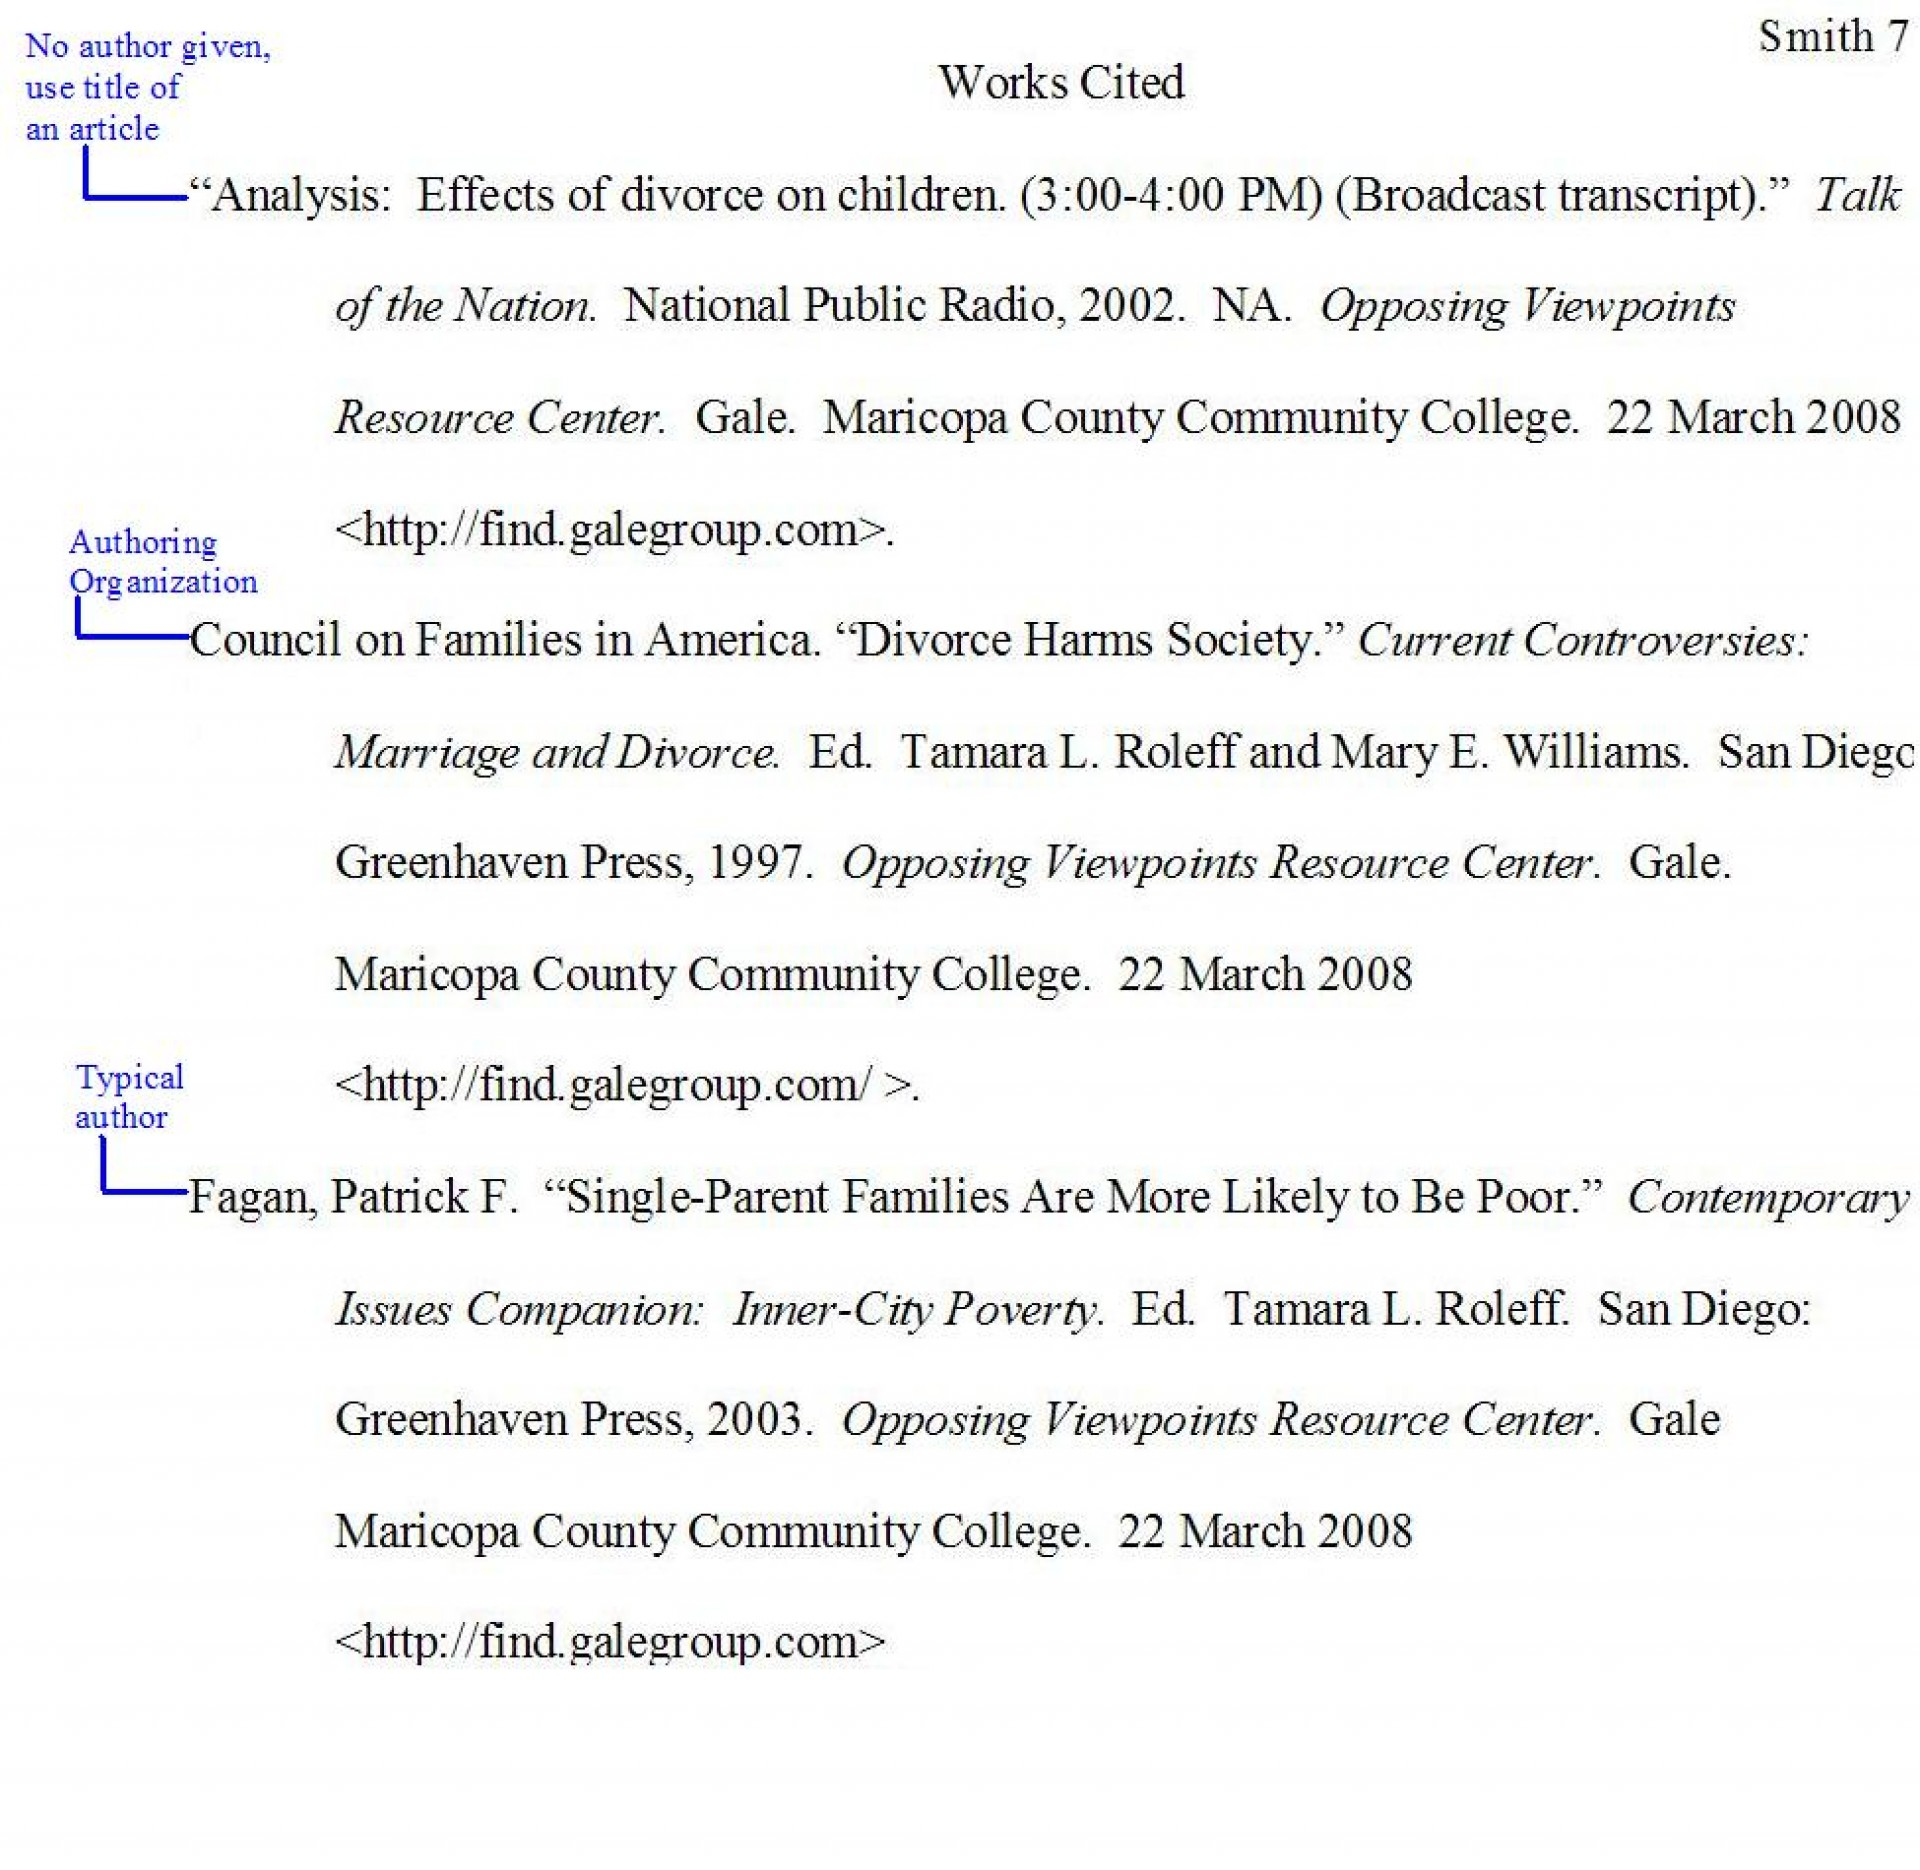 001 Samplewrkctd Jpg Citation Page For Research Wonderful Paper How To Make A Works Cited About The Little Rock Nine 1920